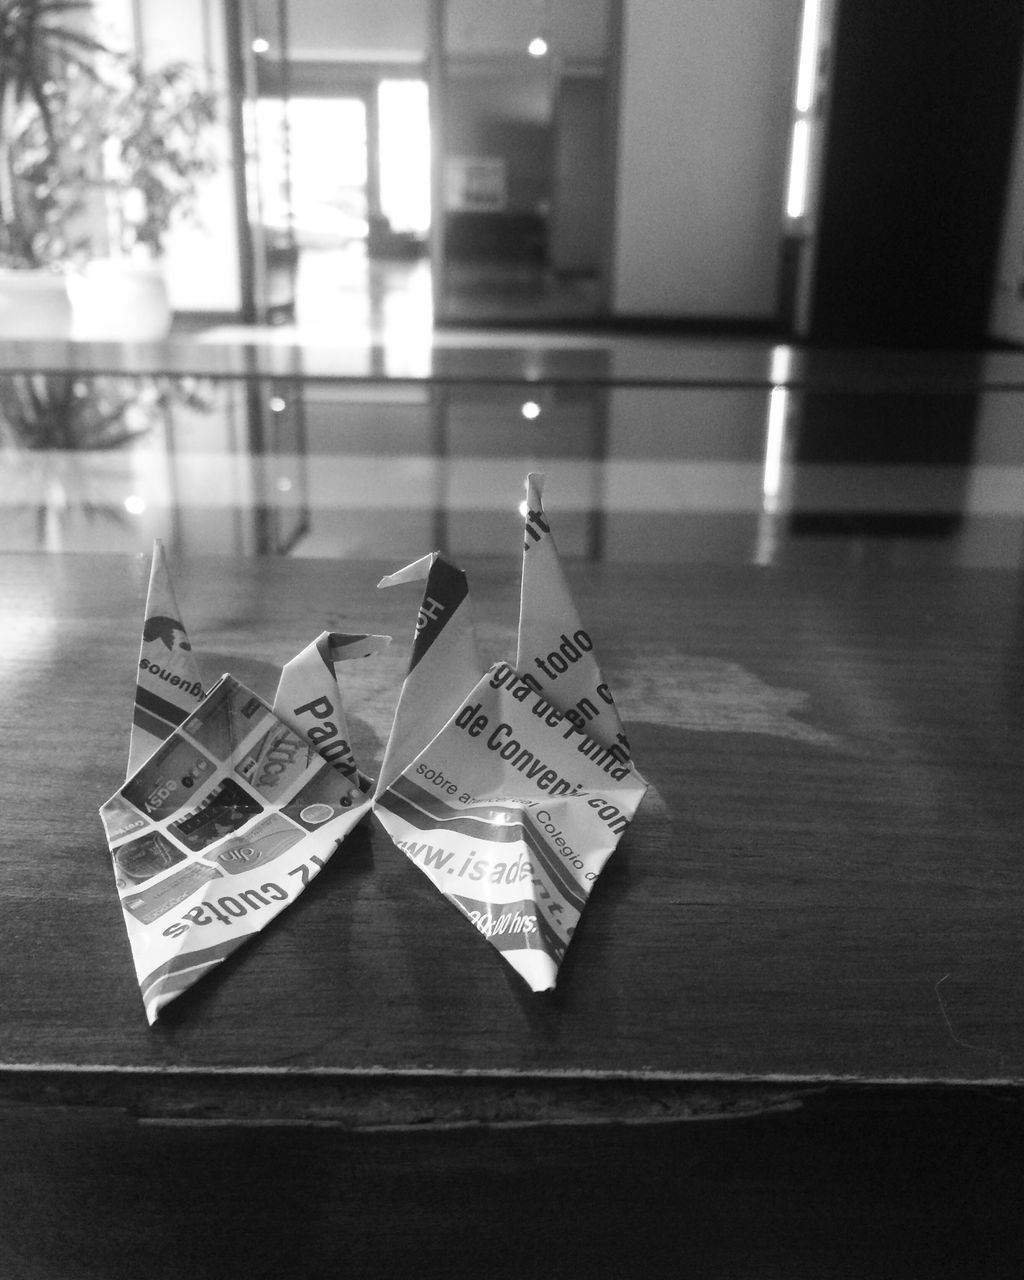 indoors, no people, table, still life, paper, close-up, creativity, communication, focus on foreground, finance, text, origami, art and craft, business, flooring, glass - material, representation, wealth, transparent